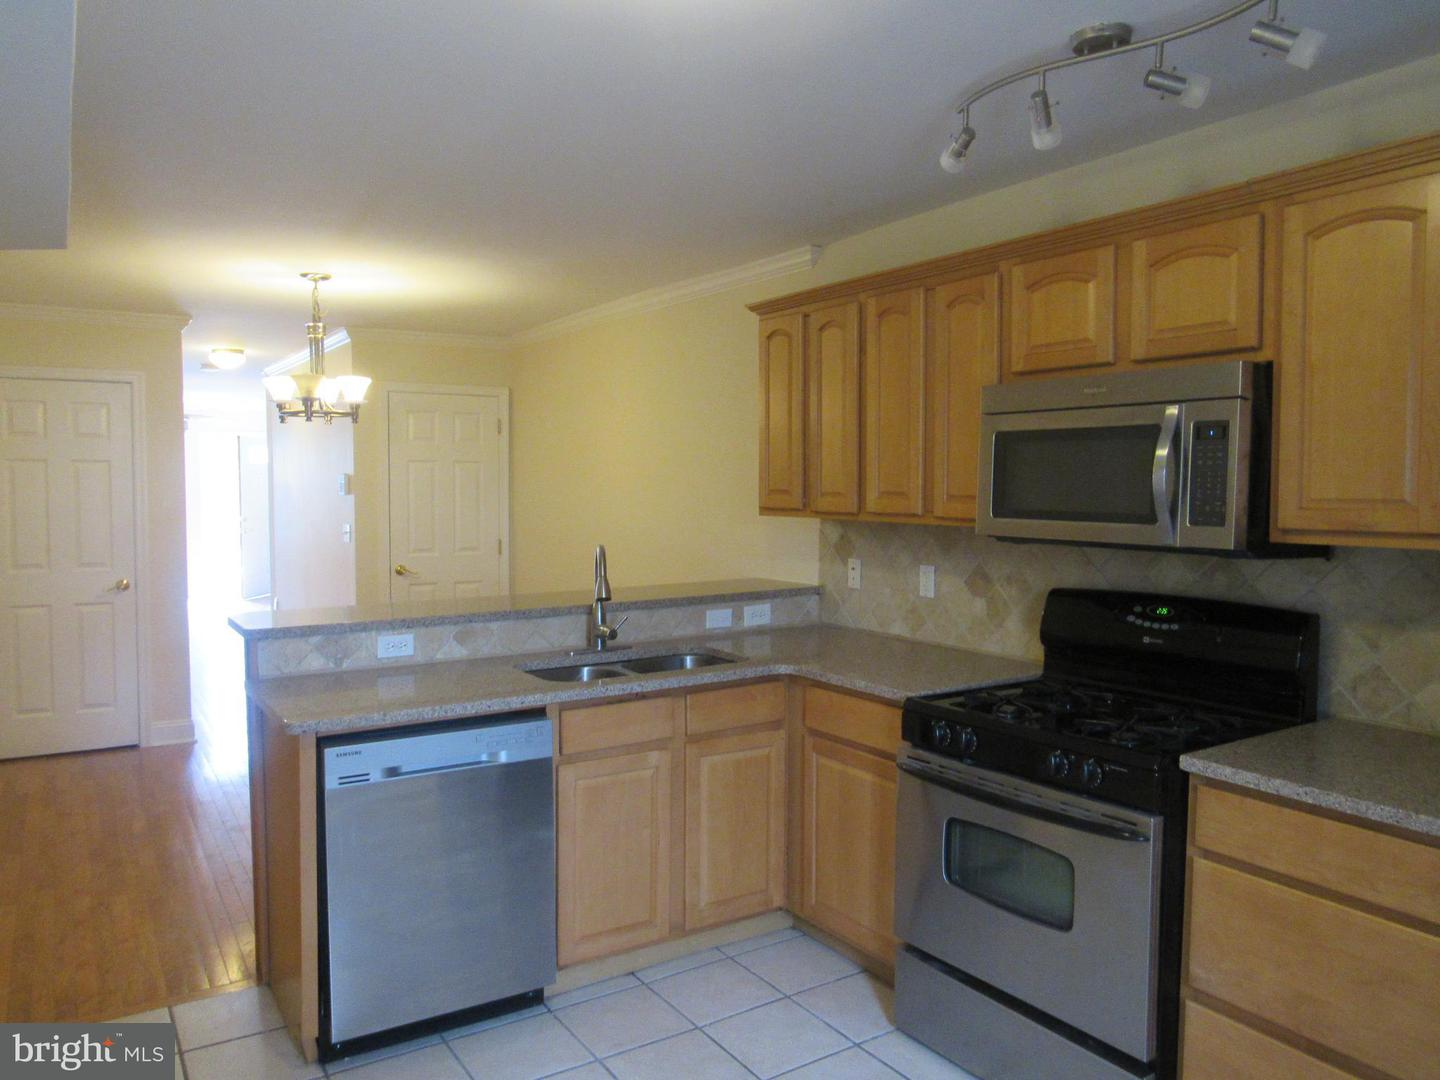 Other Residential for Rent at 1134 Carroll St Baltimore, Maryland 21230 United States